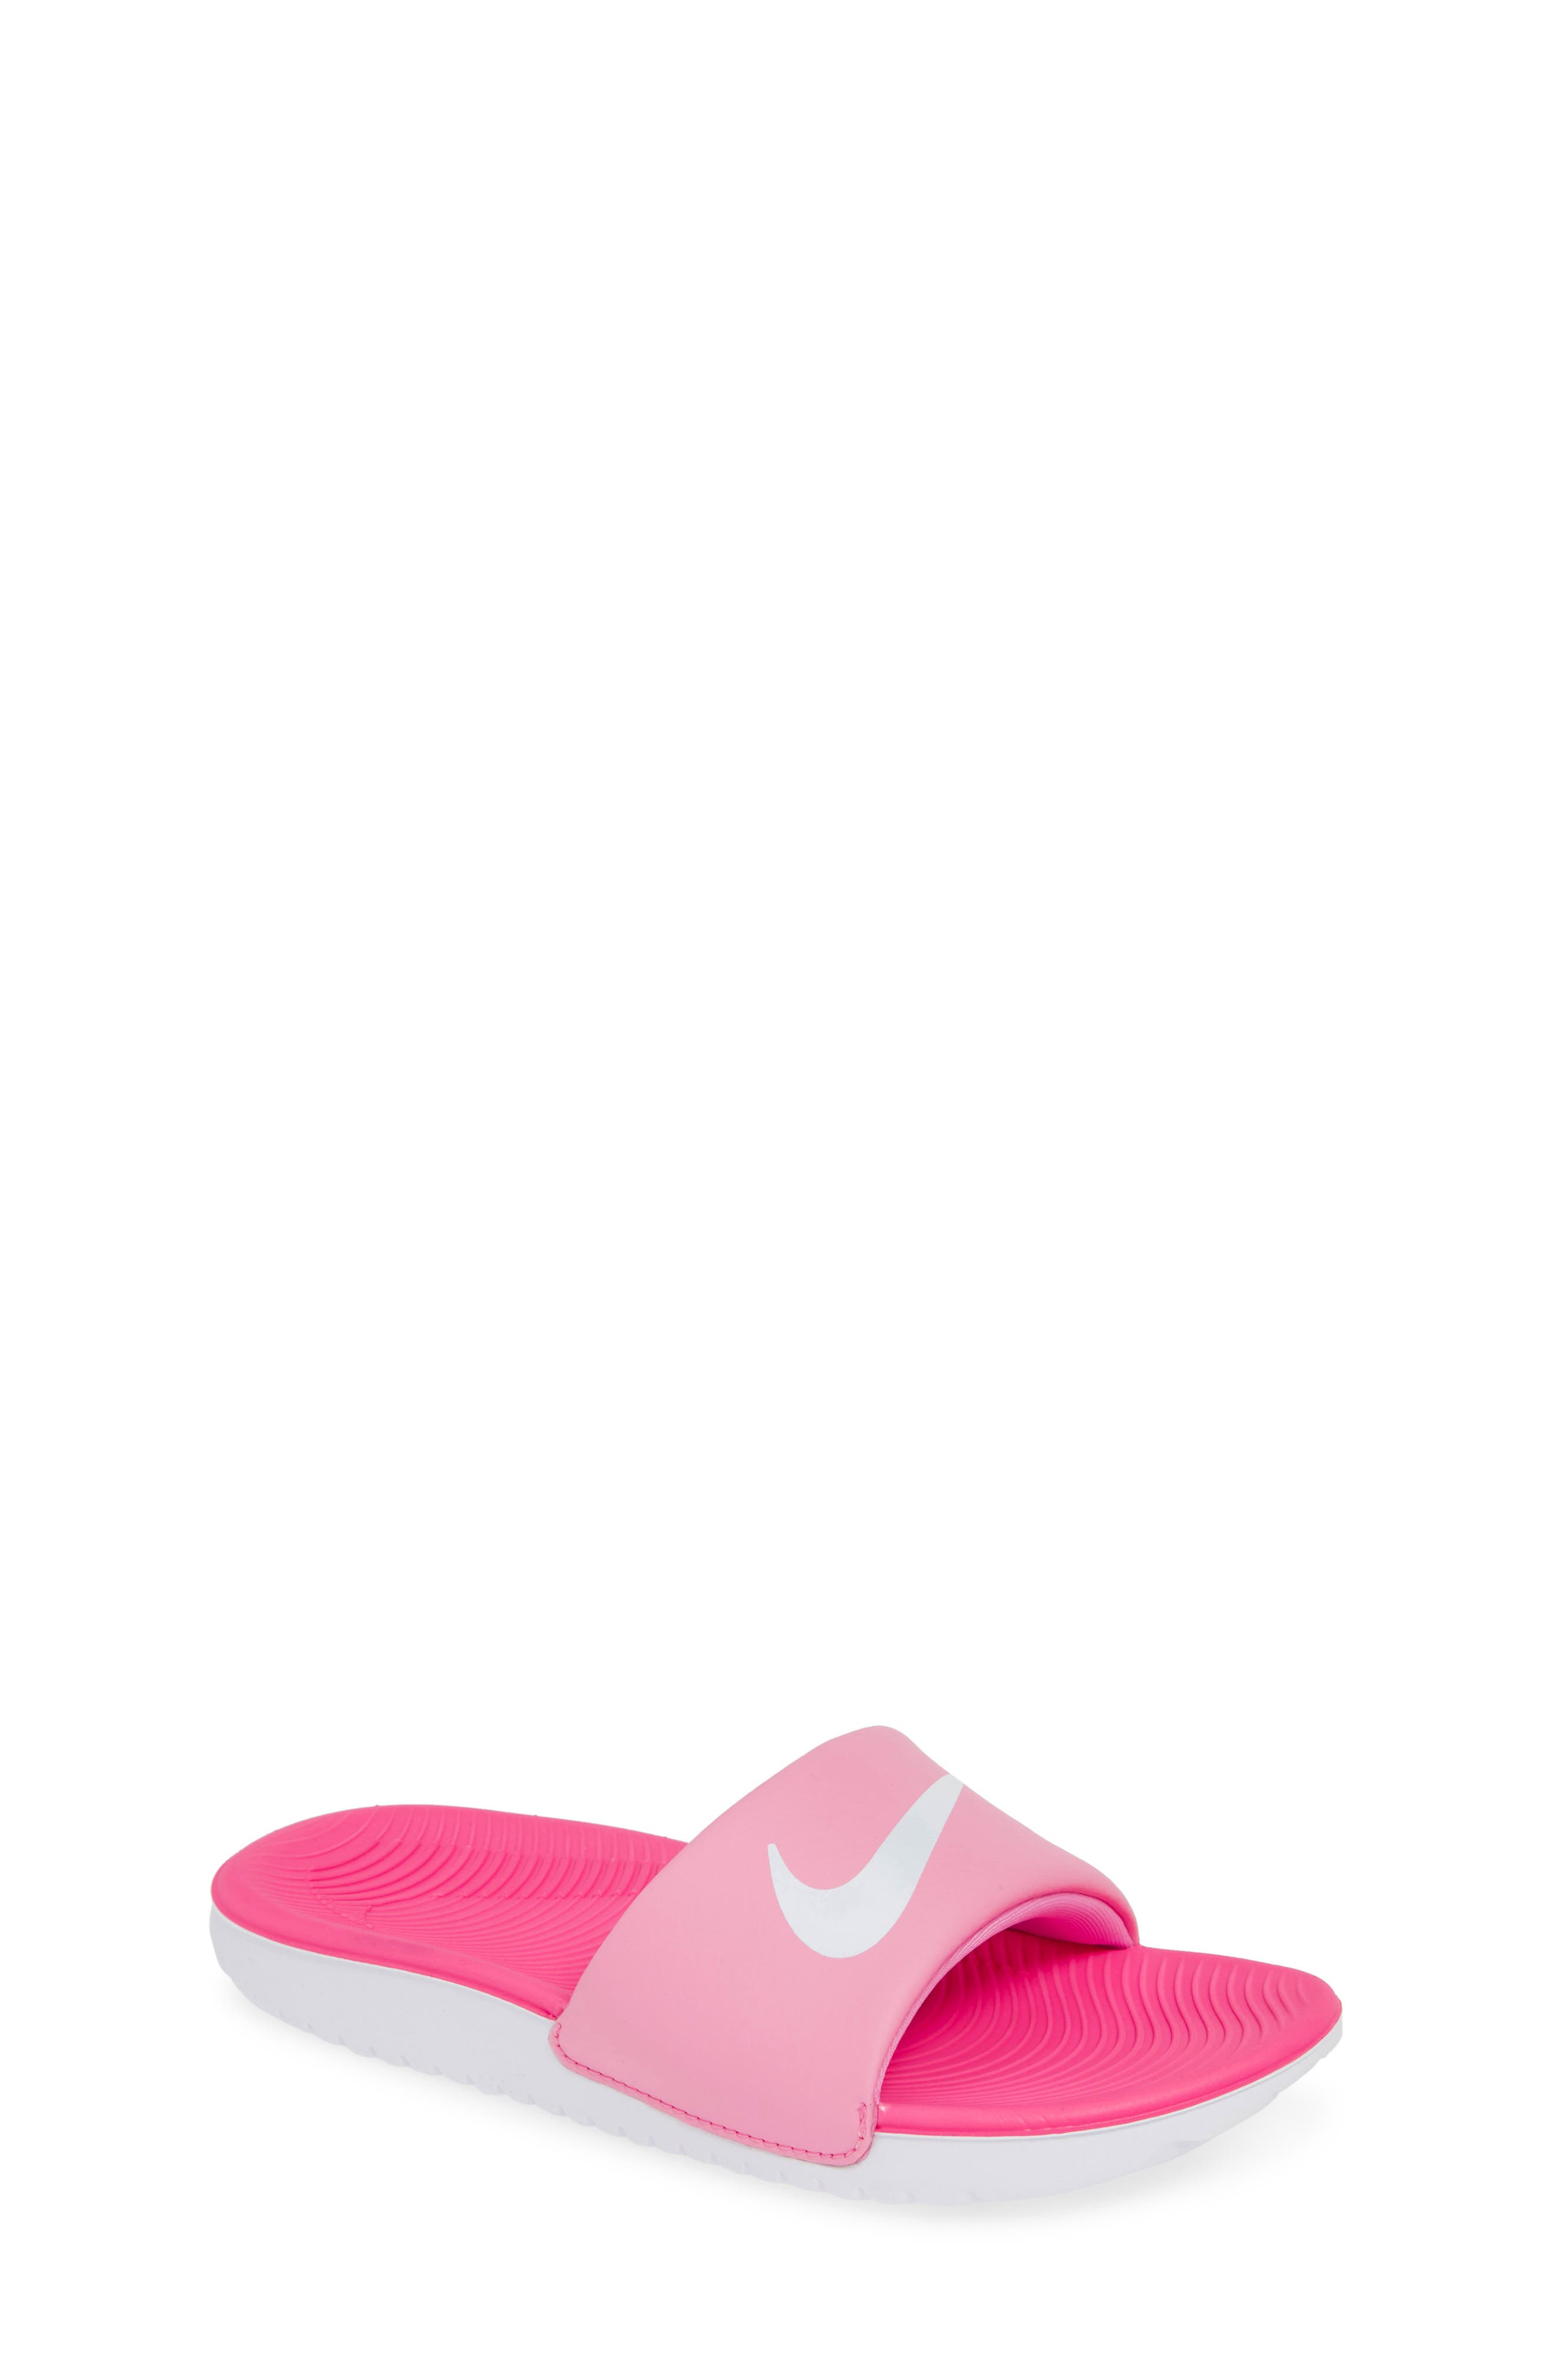 3731950d3509 Nike Shoes for Kids For Girls